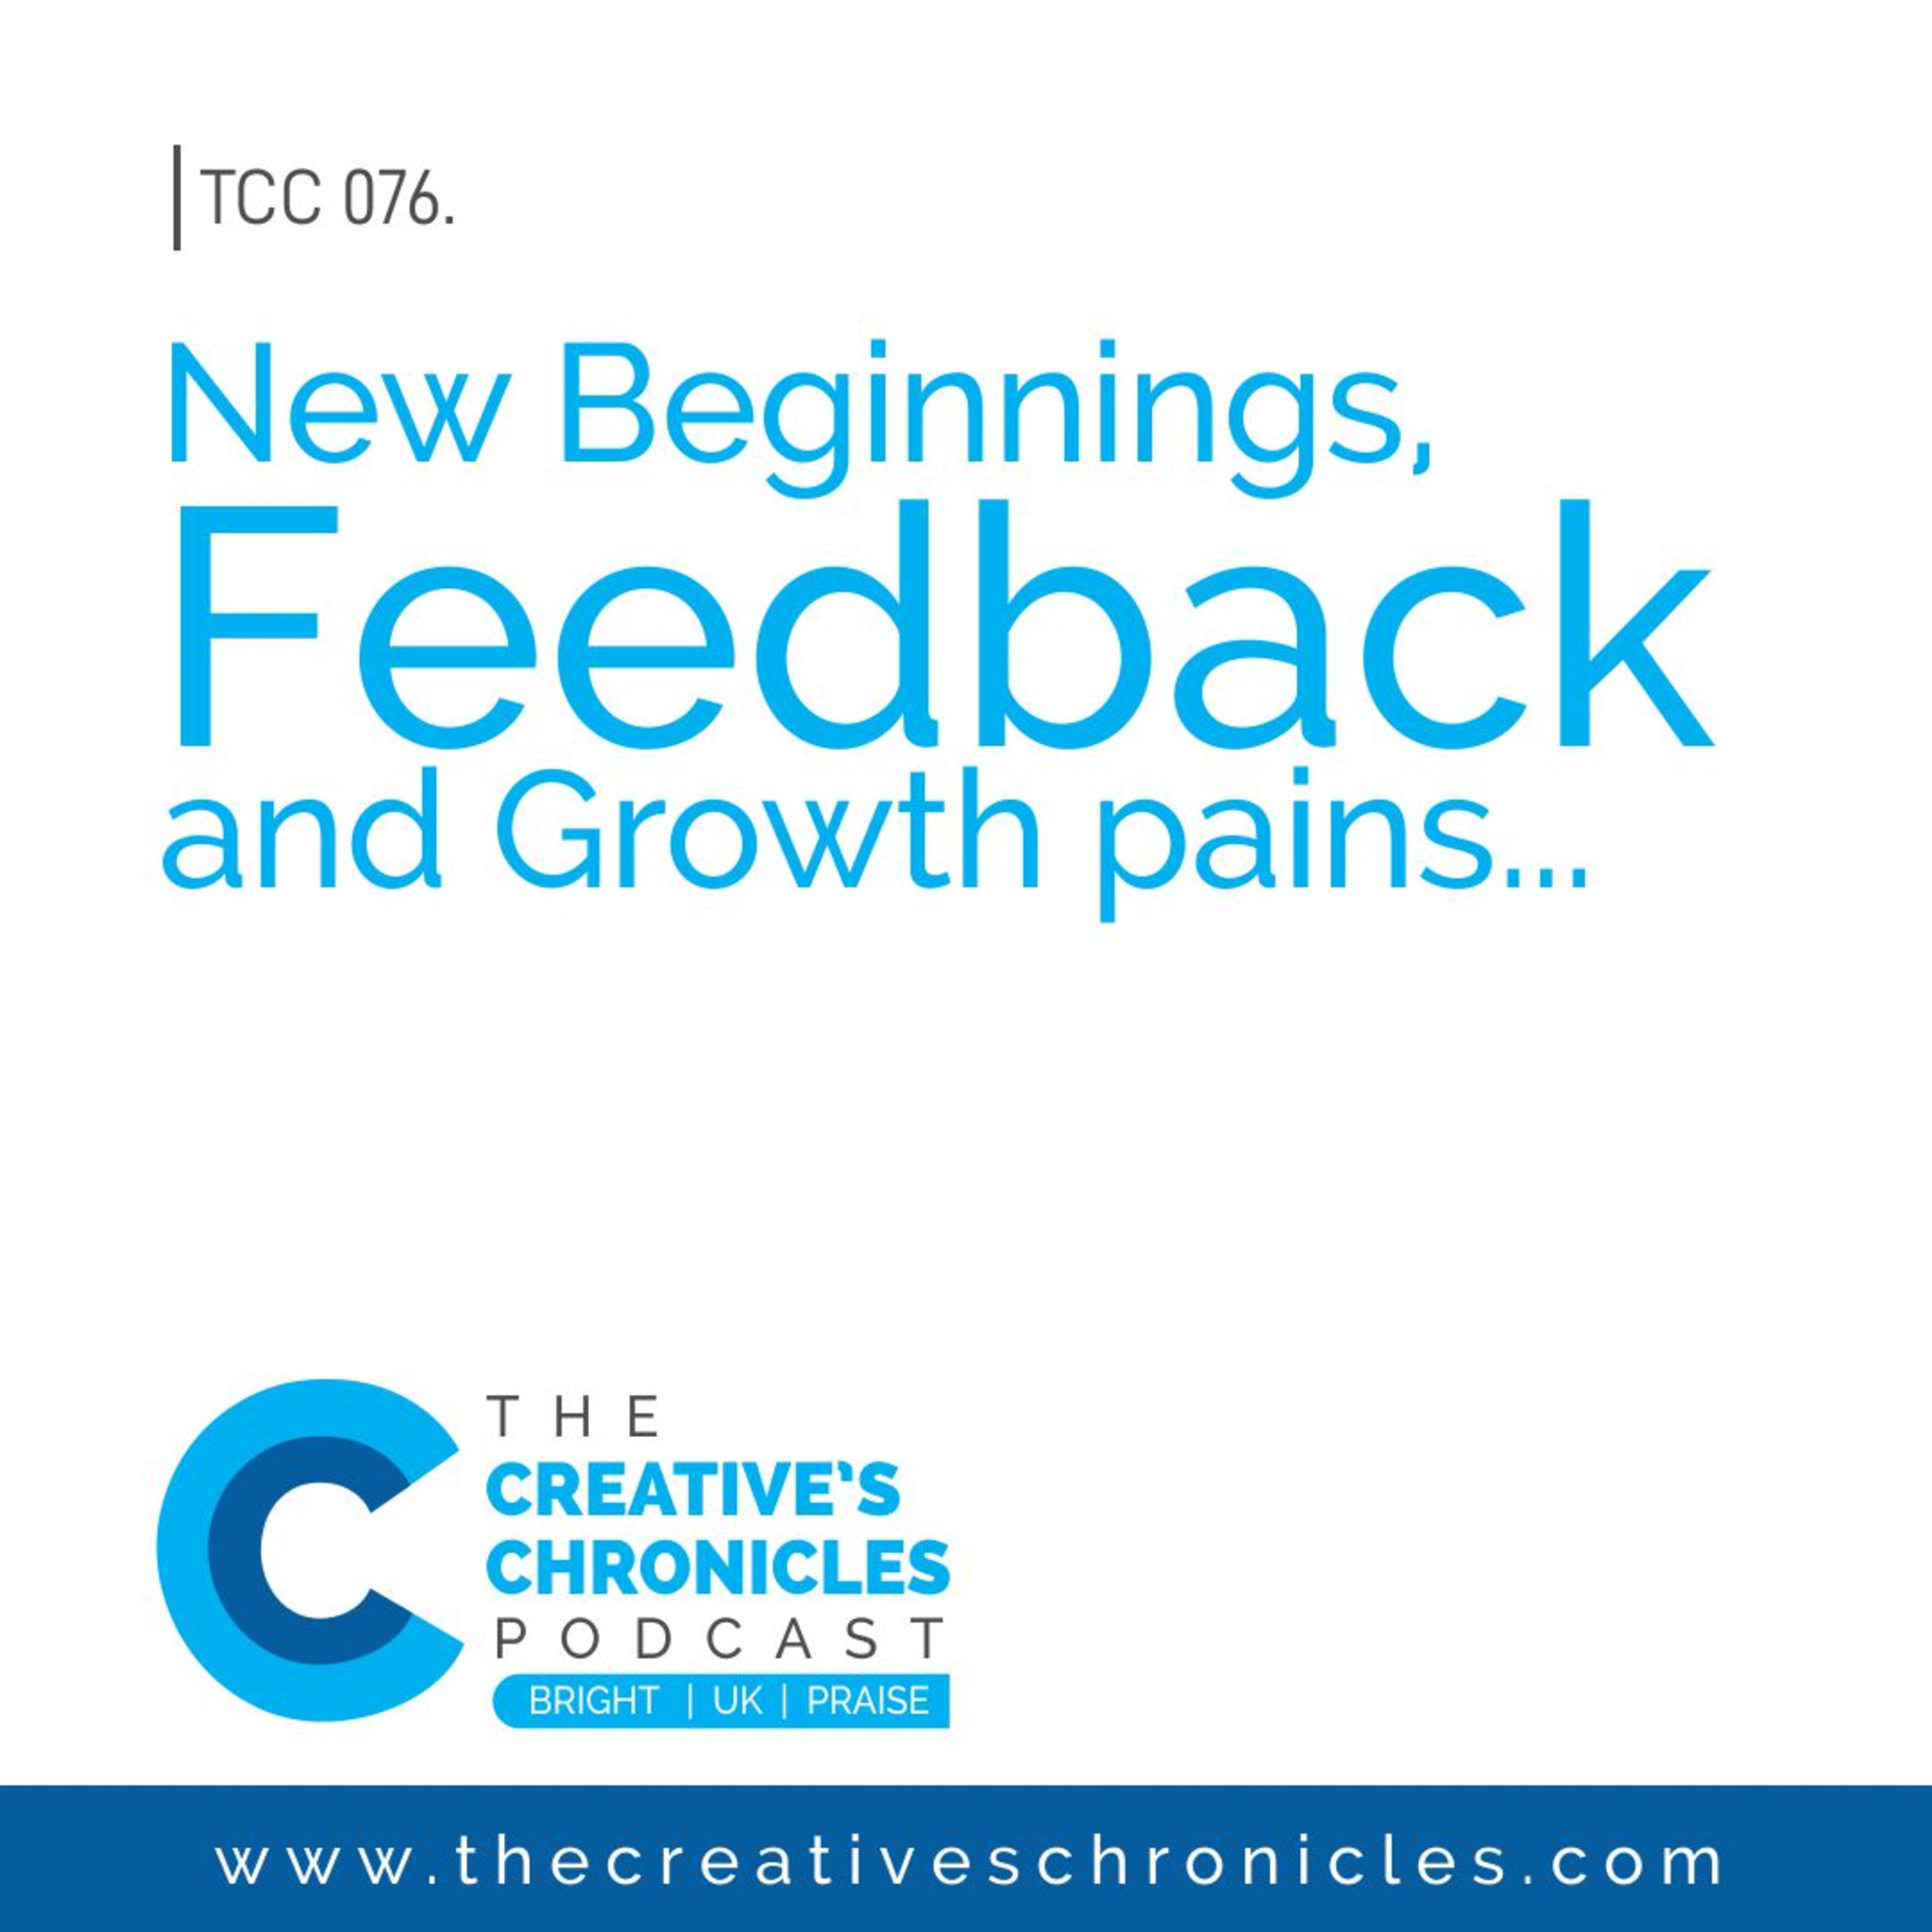 New Beginnings, Feedback and Growth Pains